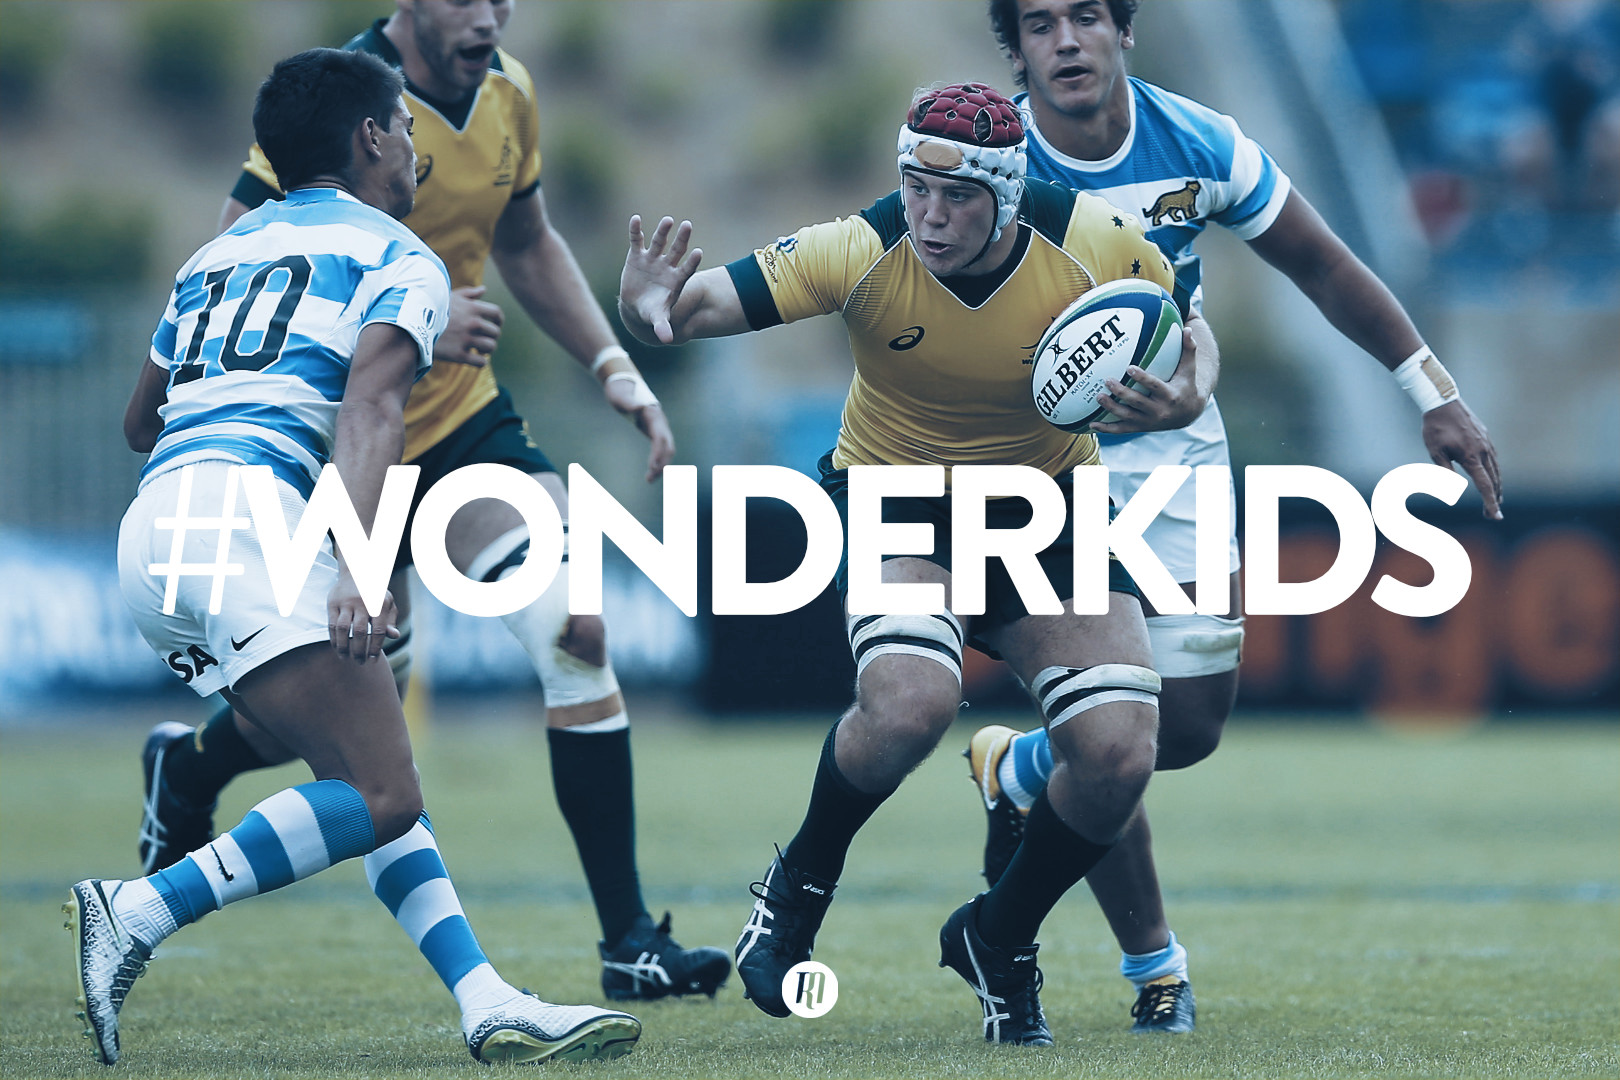 Wonderkids: Junior World Cup Semi-Finals, who stood out?